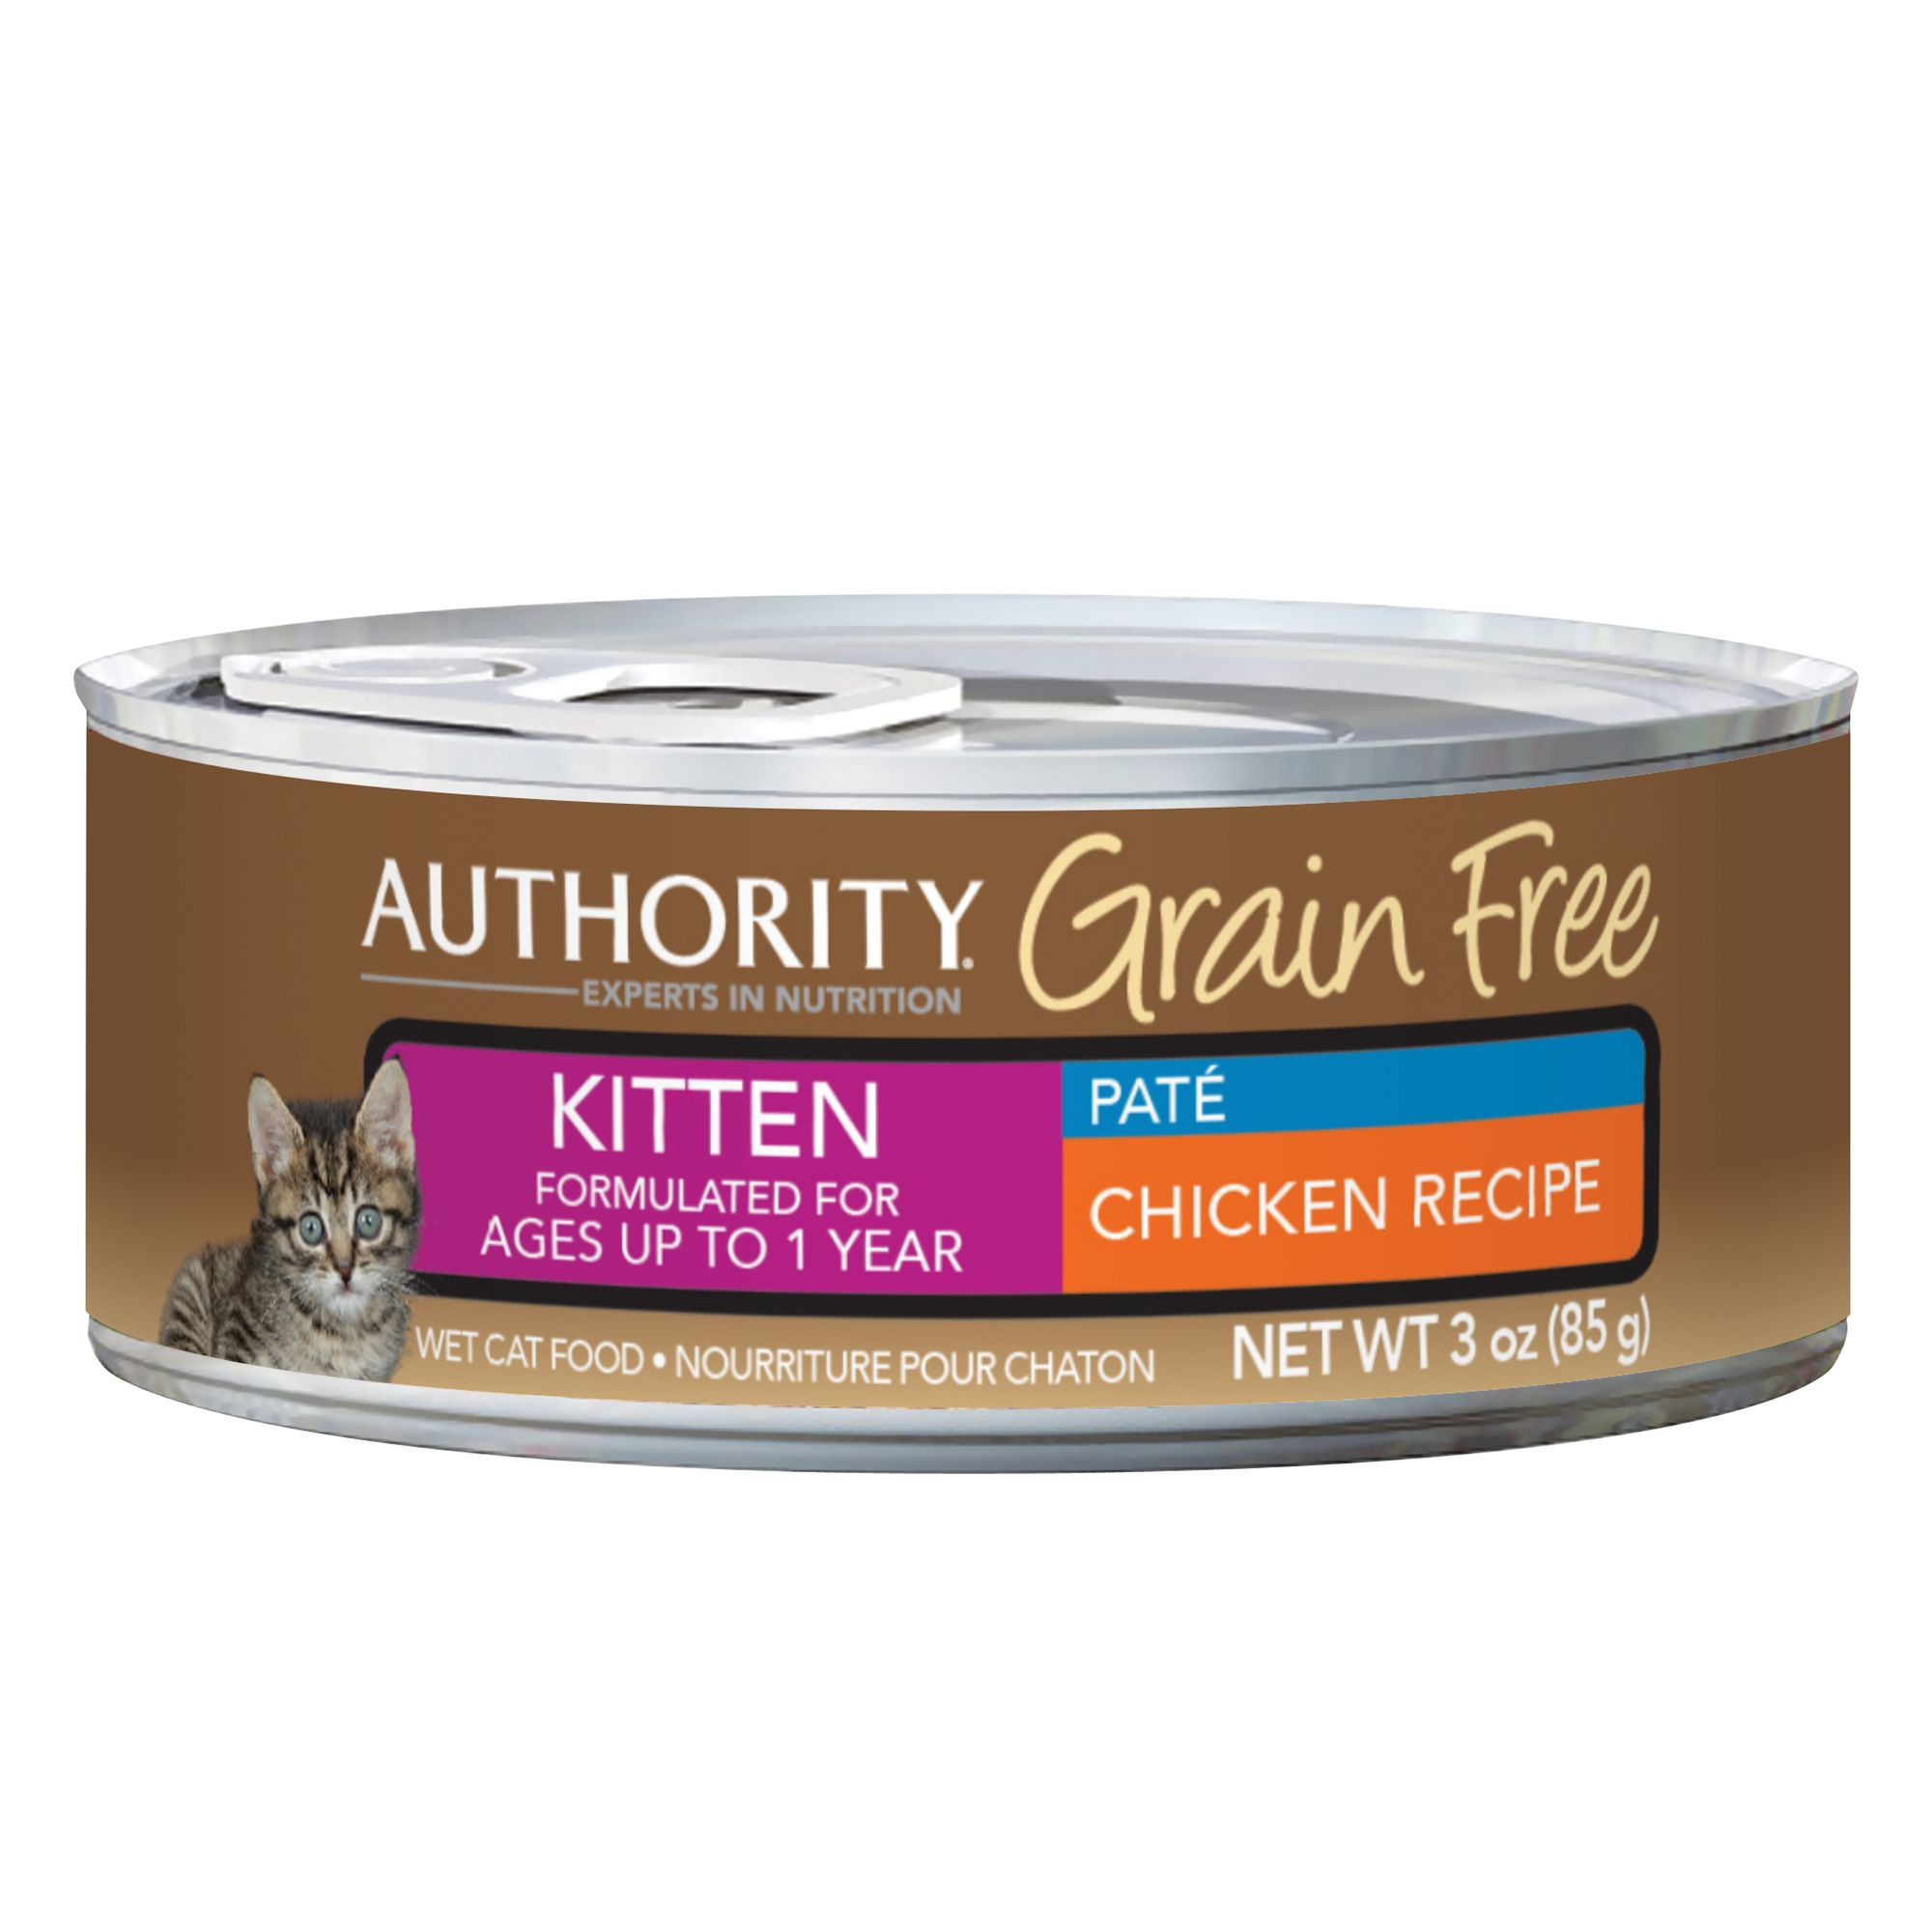 Authority Grain Free Kitten Food Chicken Size 3 Oz